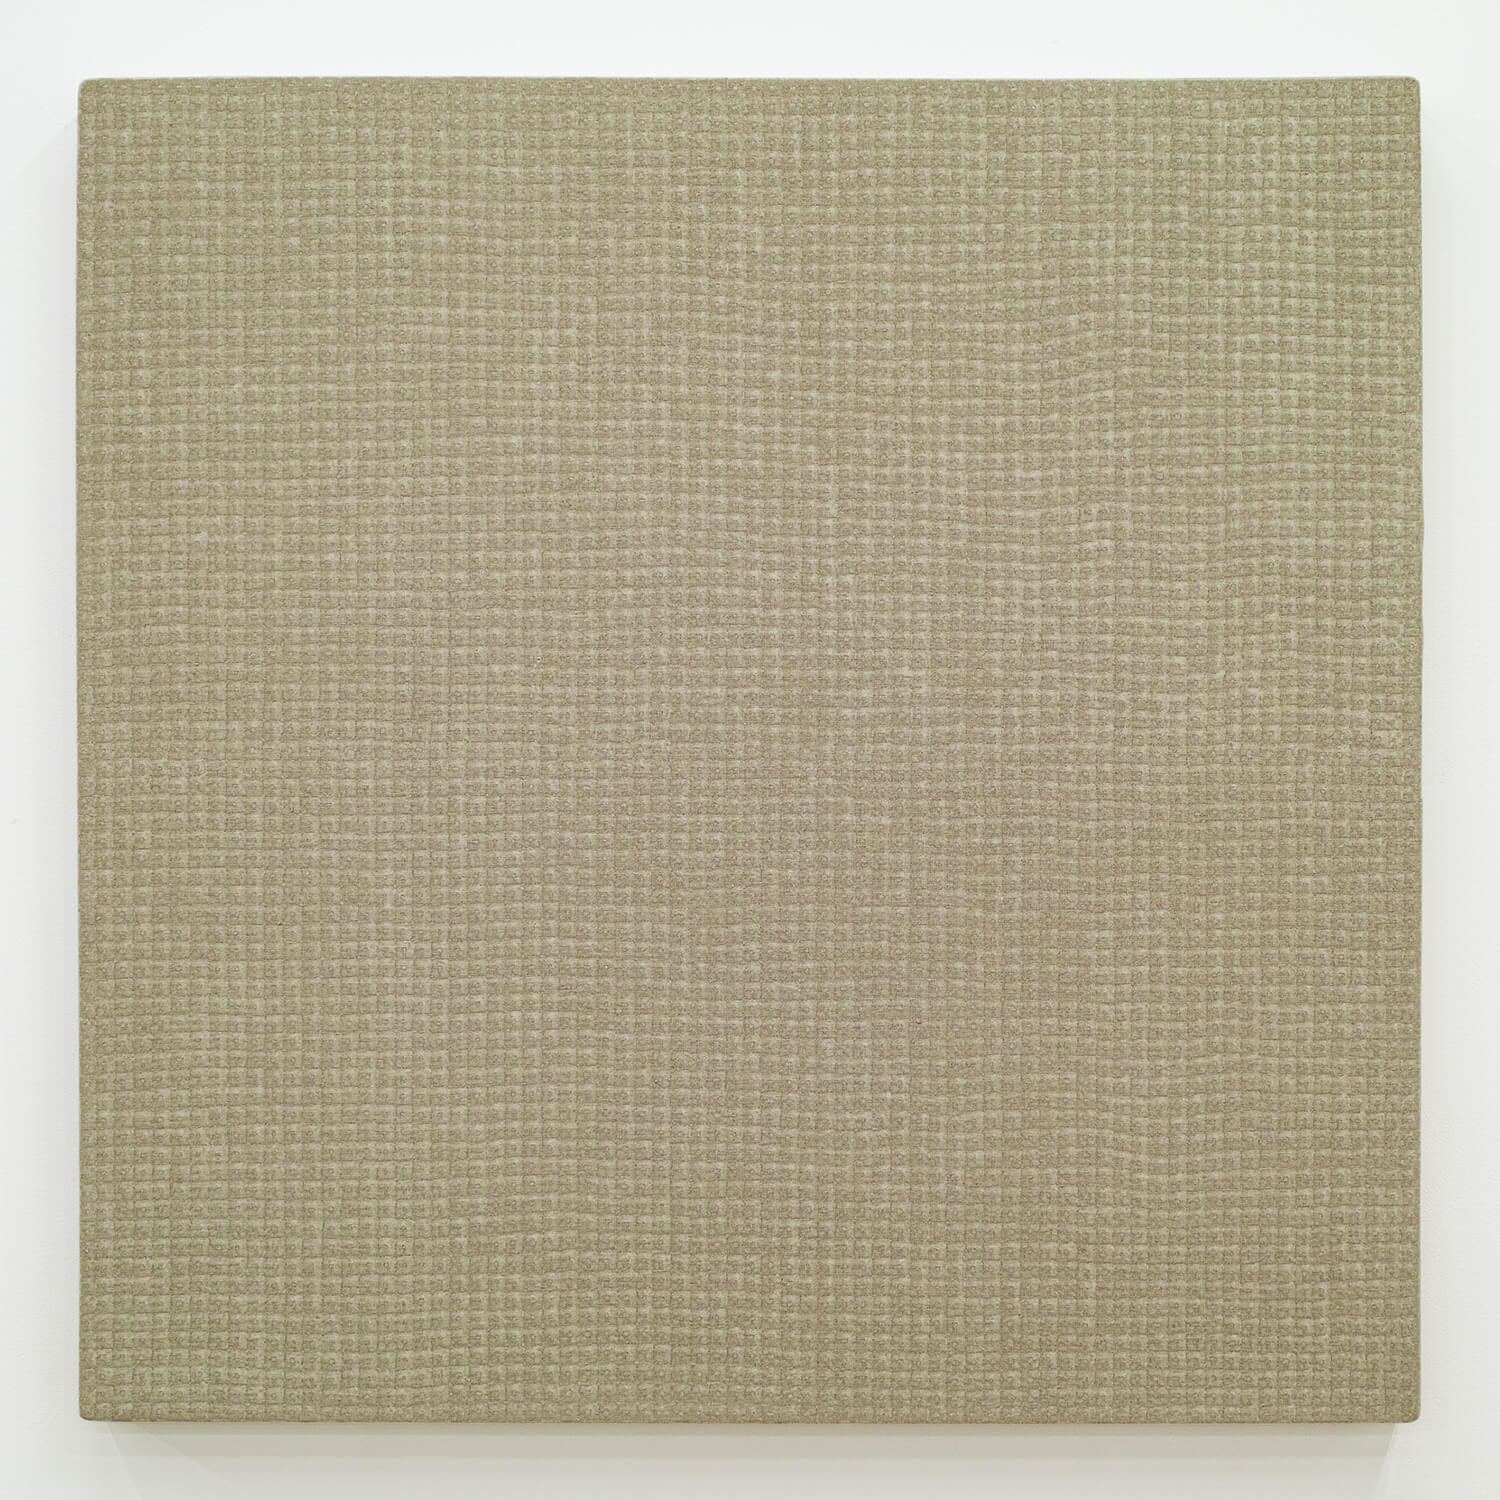 麻布-square 09-1|Acylic on canvas 72.5 x 72.5 cm|2009